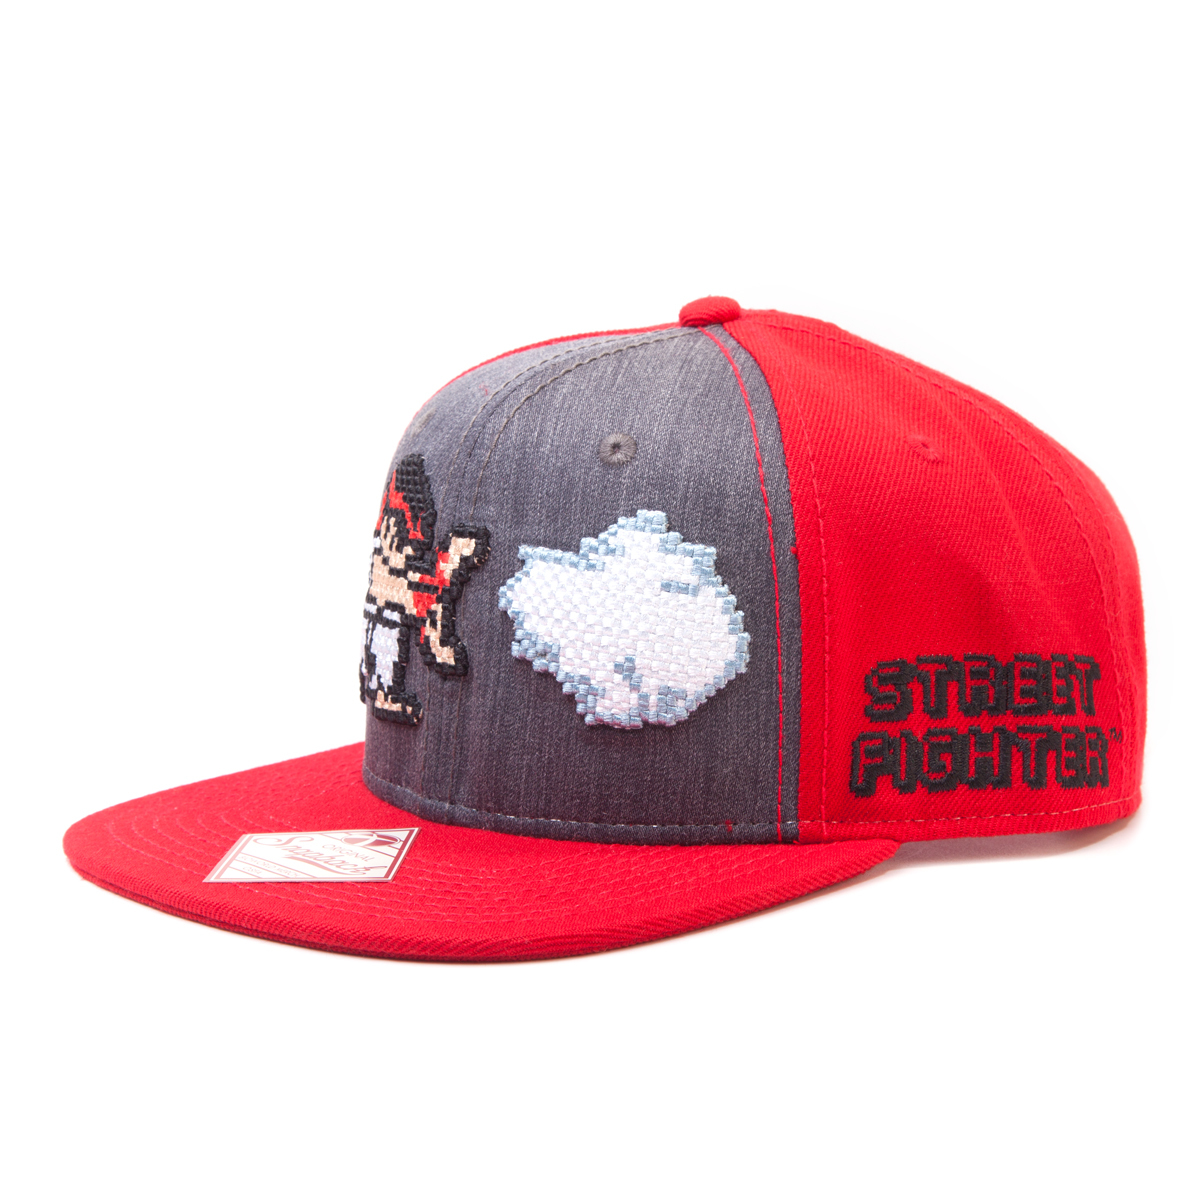 Street fighter snap back keps kepsar m ssor kl der for Mobilia webhallen